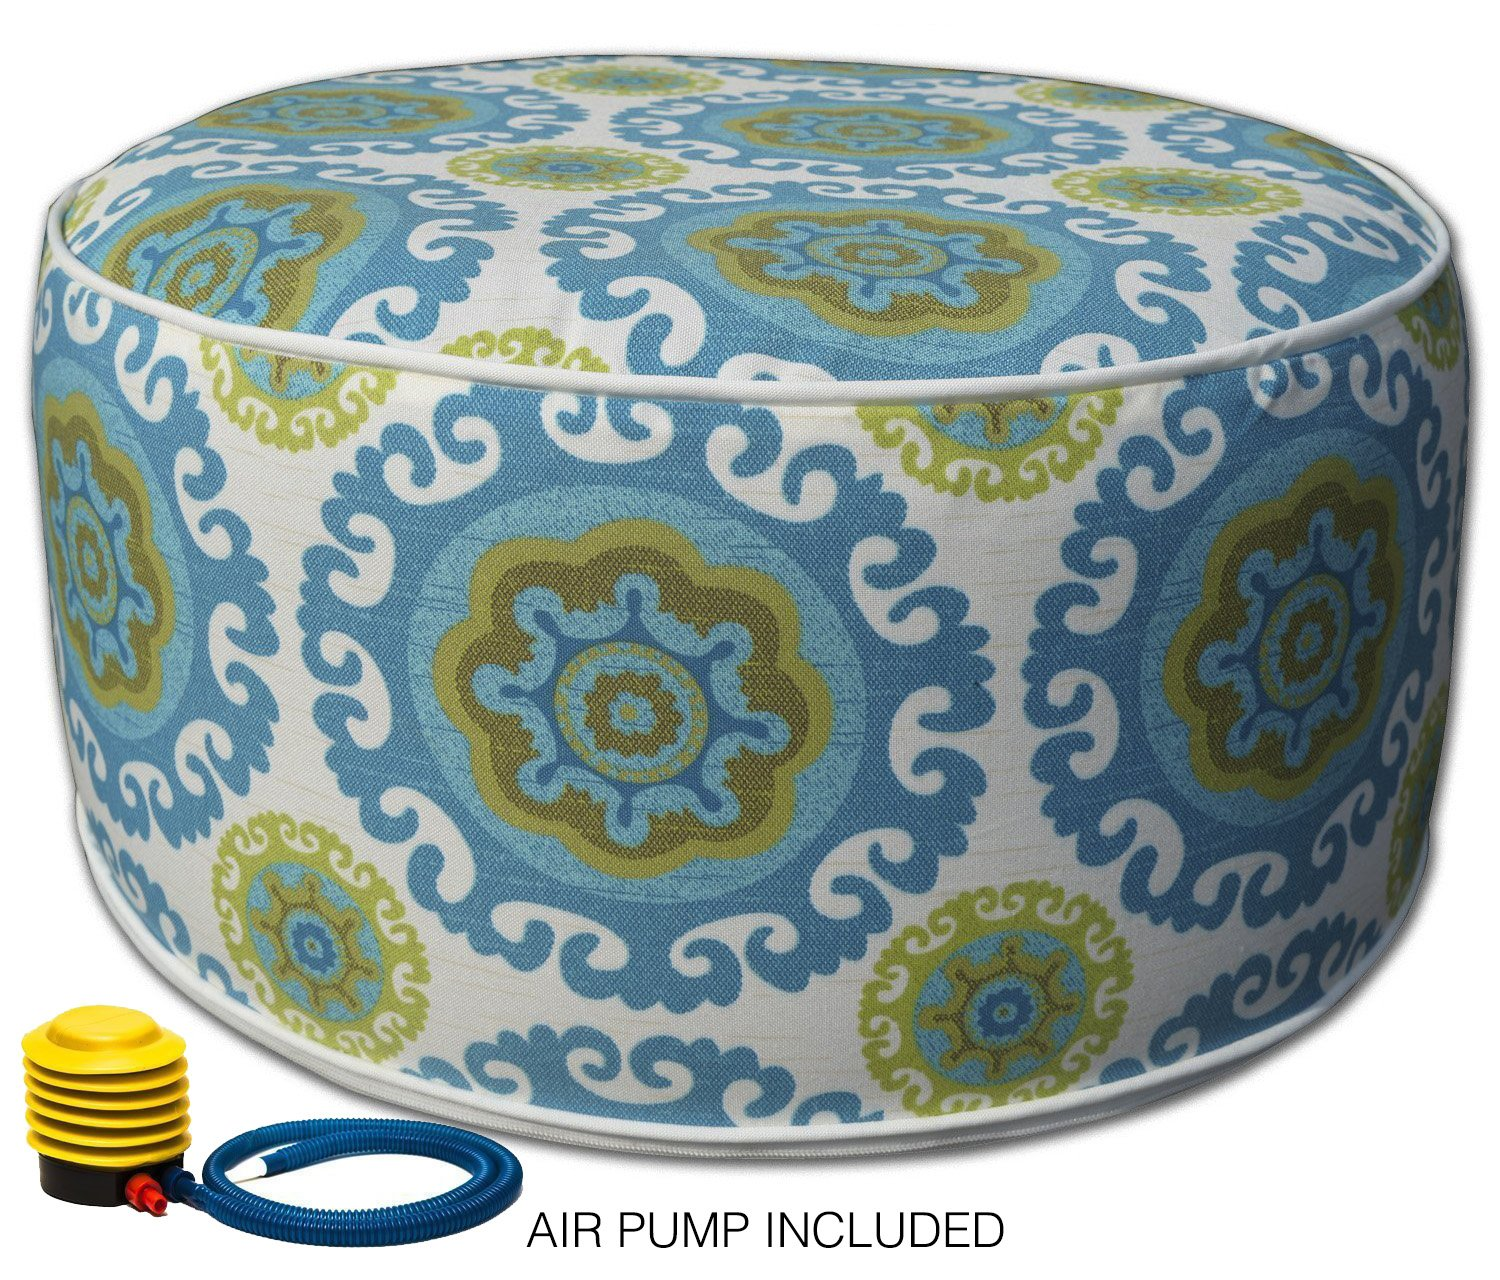 Kozyard Inflatable Stool Ottoman Used for Indoor or Outdoor, Kids or Adults, Camping or Home (Blue) by Kozyard (Image #1)